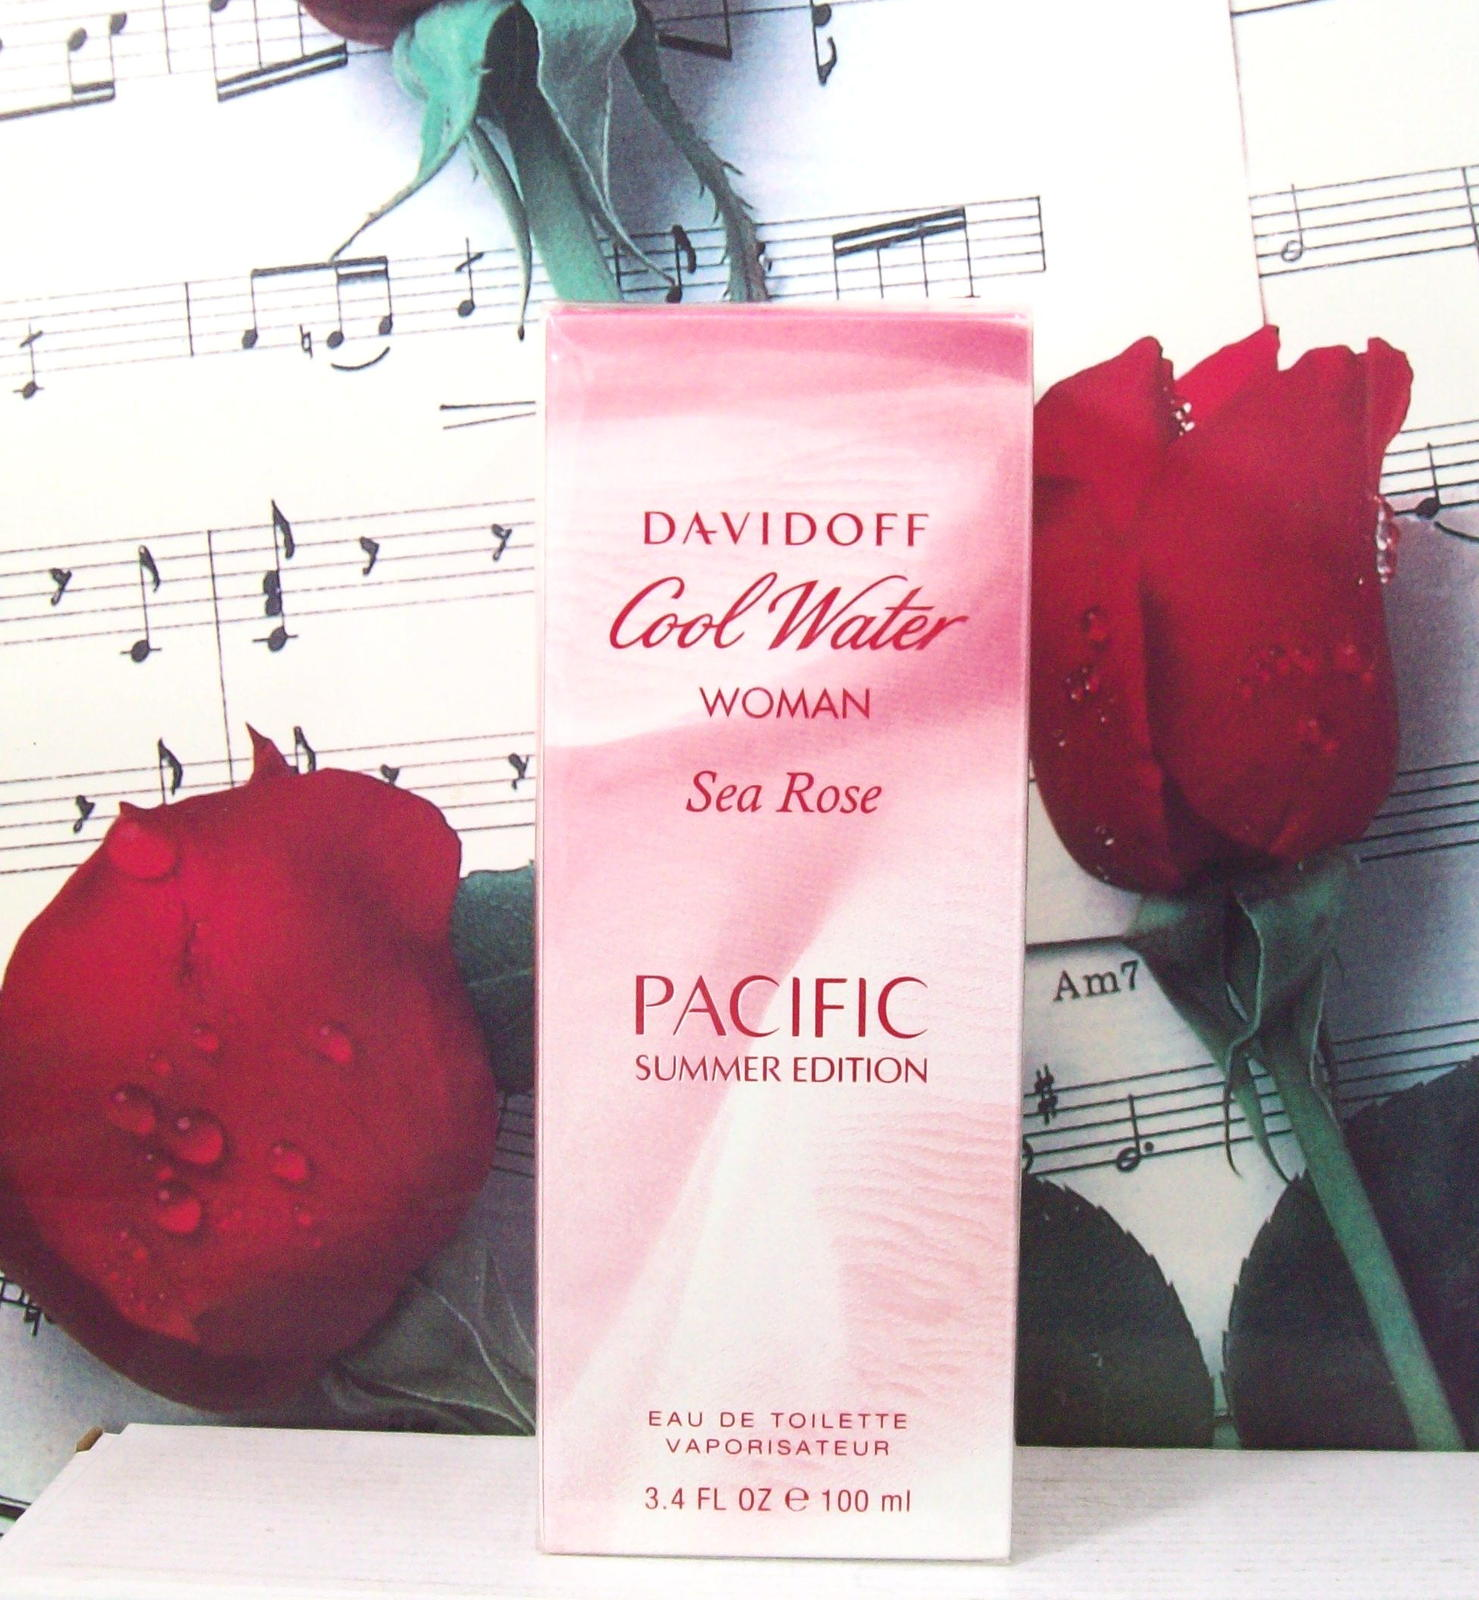 Primary image for Davidoff Cool Water Woman Sea Rose Pacific Summer Edition EDT Spray 3.4 FL. OZ.